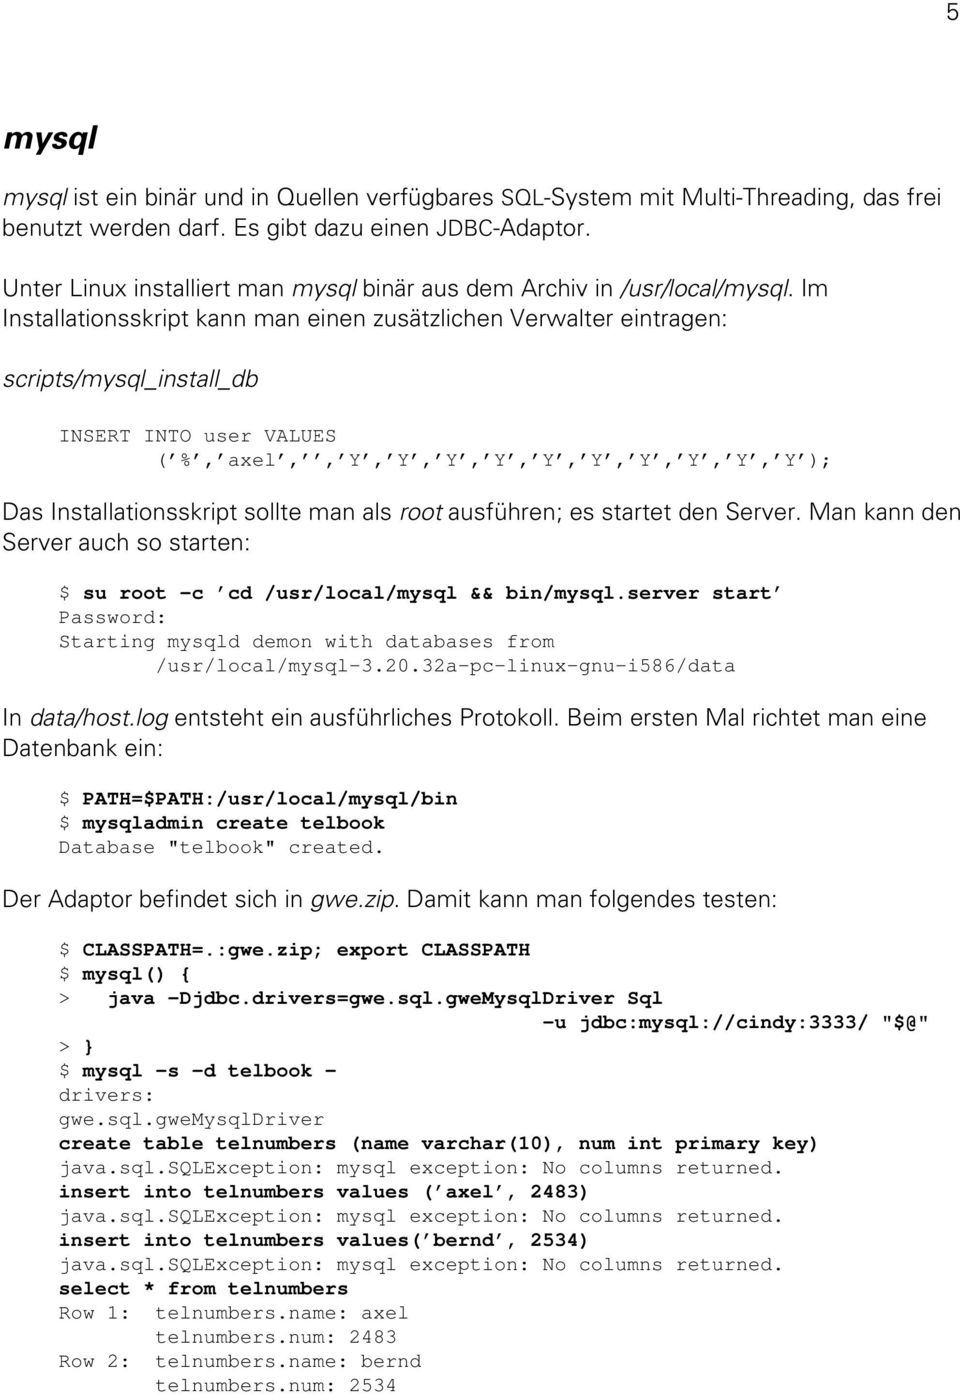 Im Installationsskript kann man einen zusätzlichen Verwalter eintragen: scripts/mysql_install_db INSERT INTO user VALUES ( %, axel,, Y, Y, Y, Y, Y, Y, Y, Y, Y, Y ); Das Installationsskript sollte man